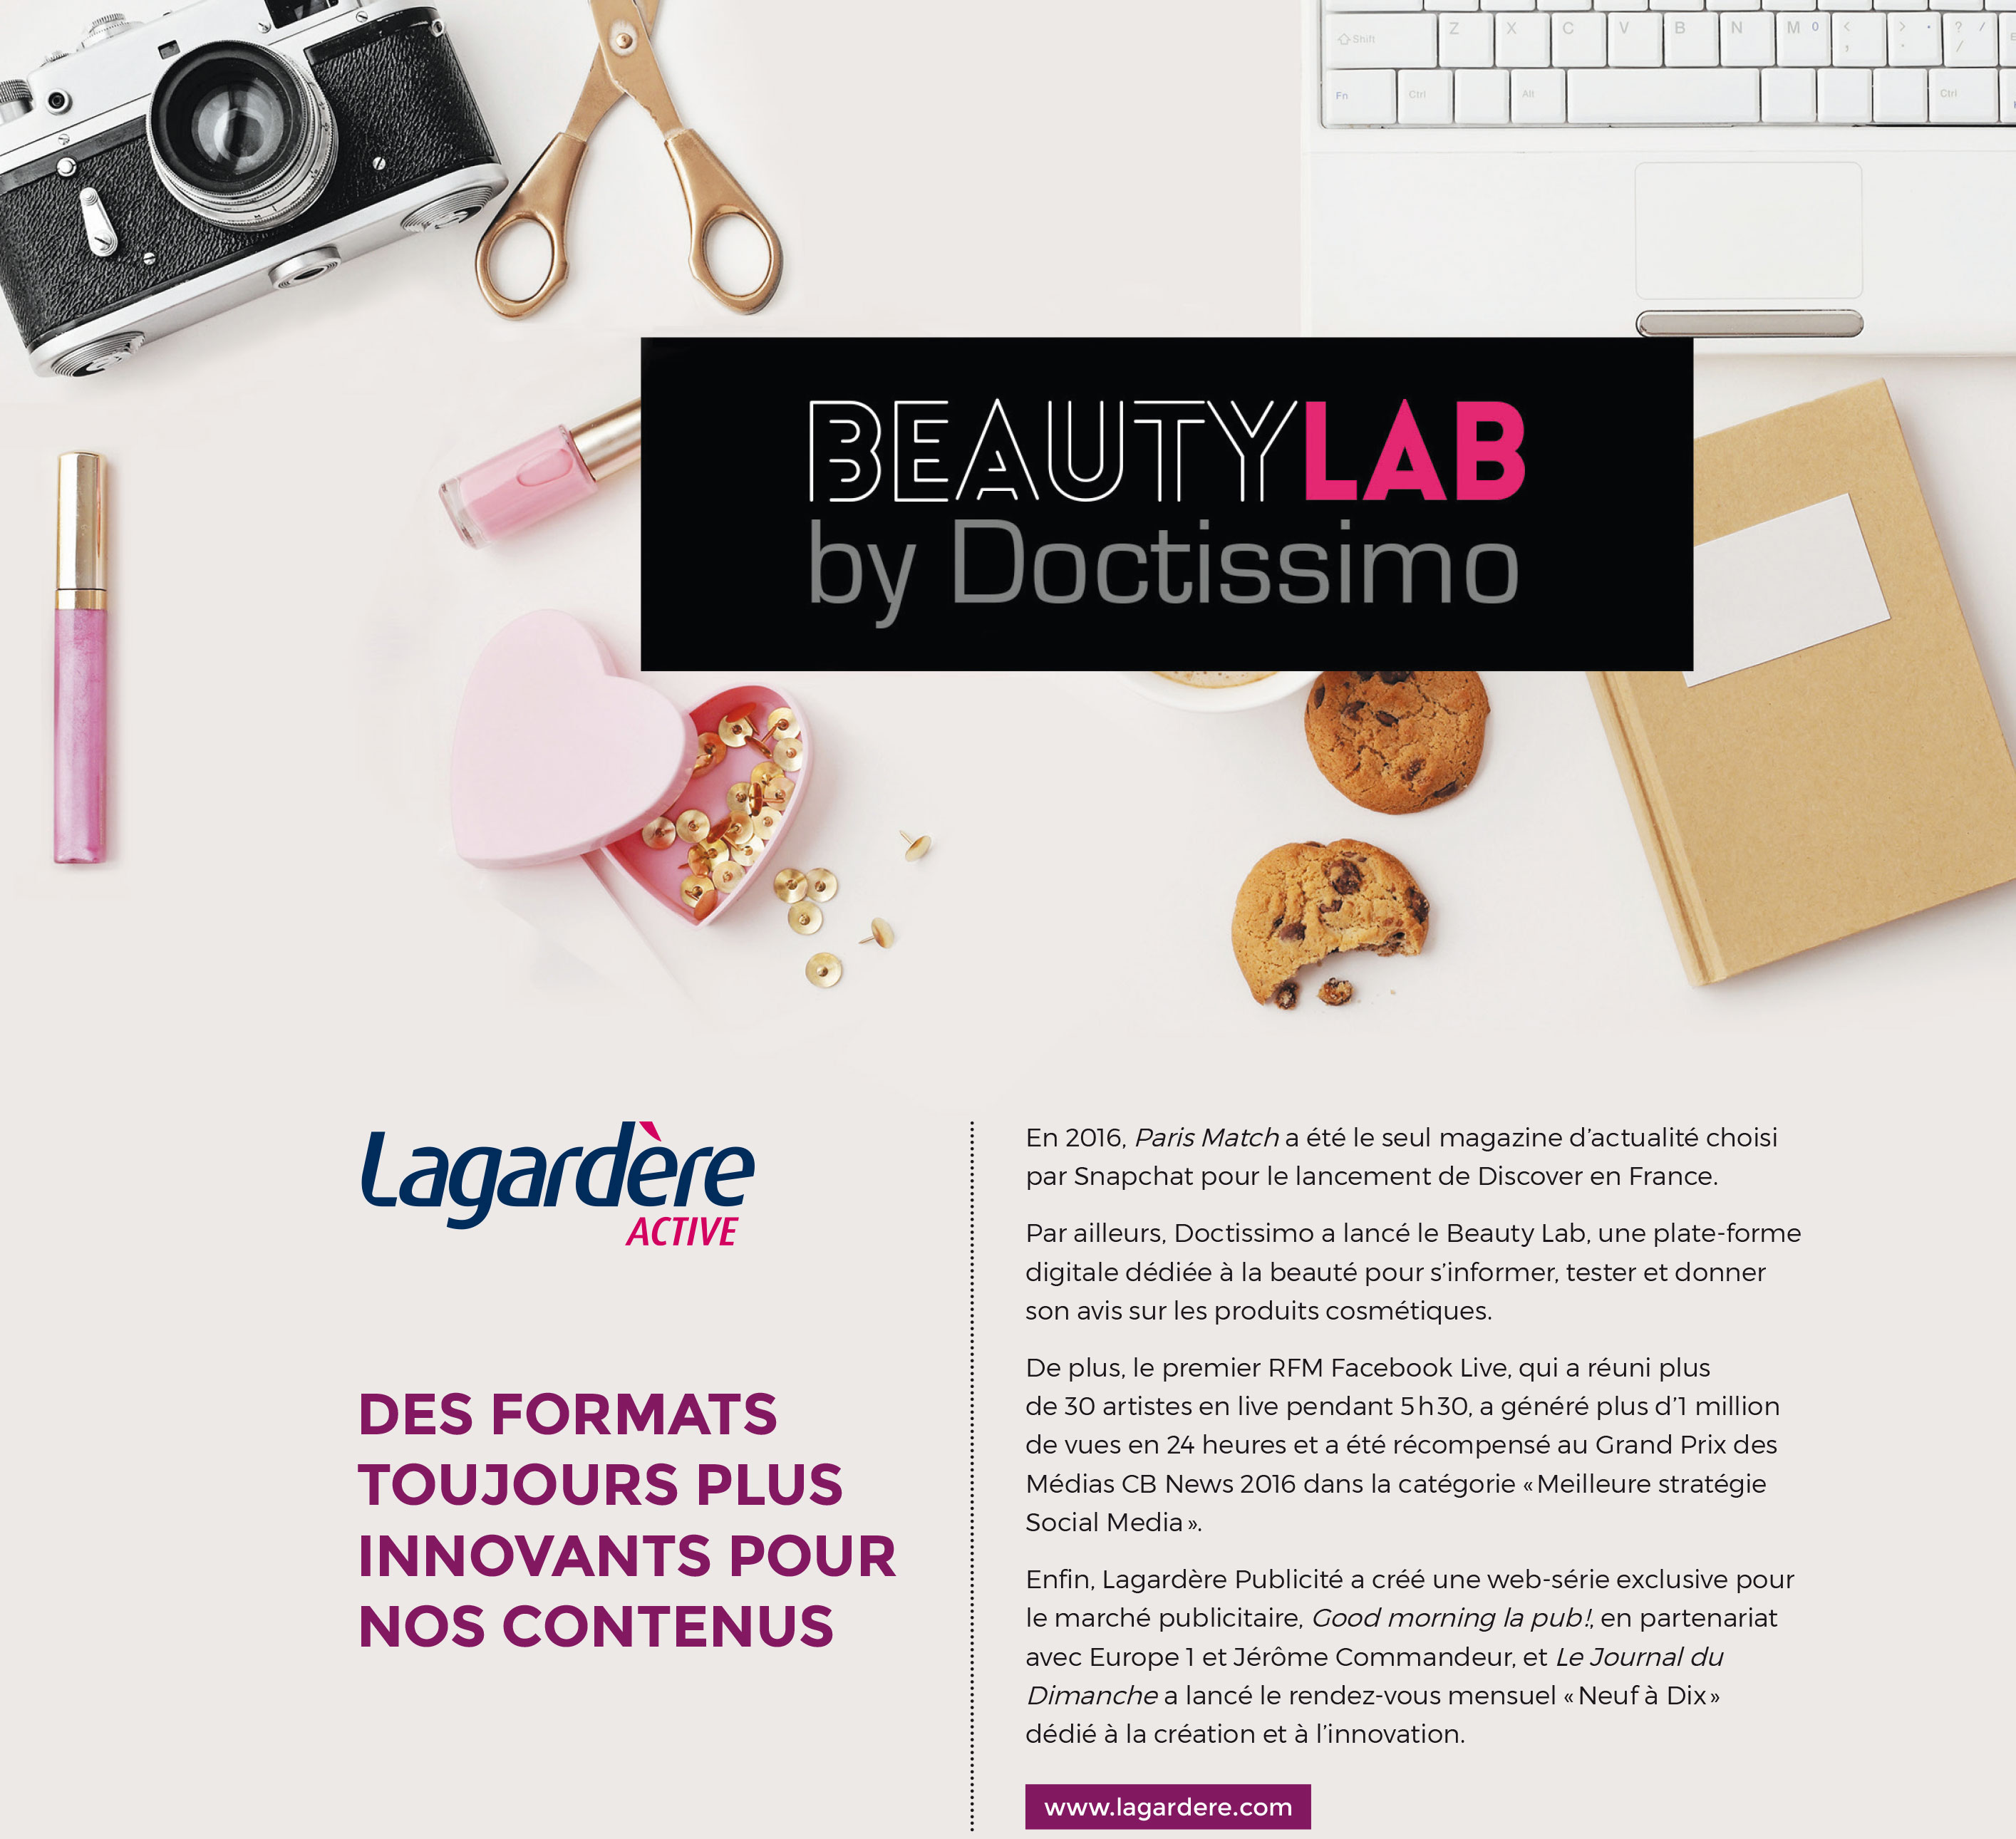 Beauty Lab by Doctissimo